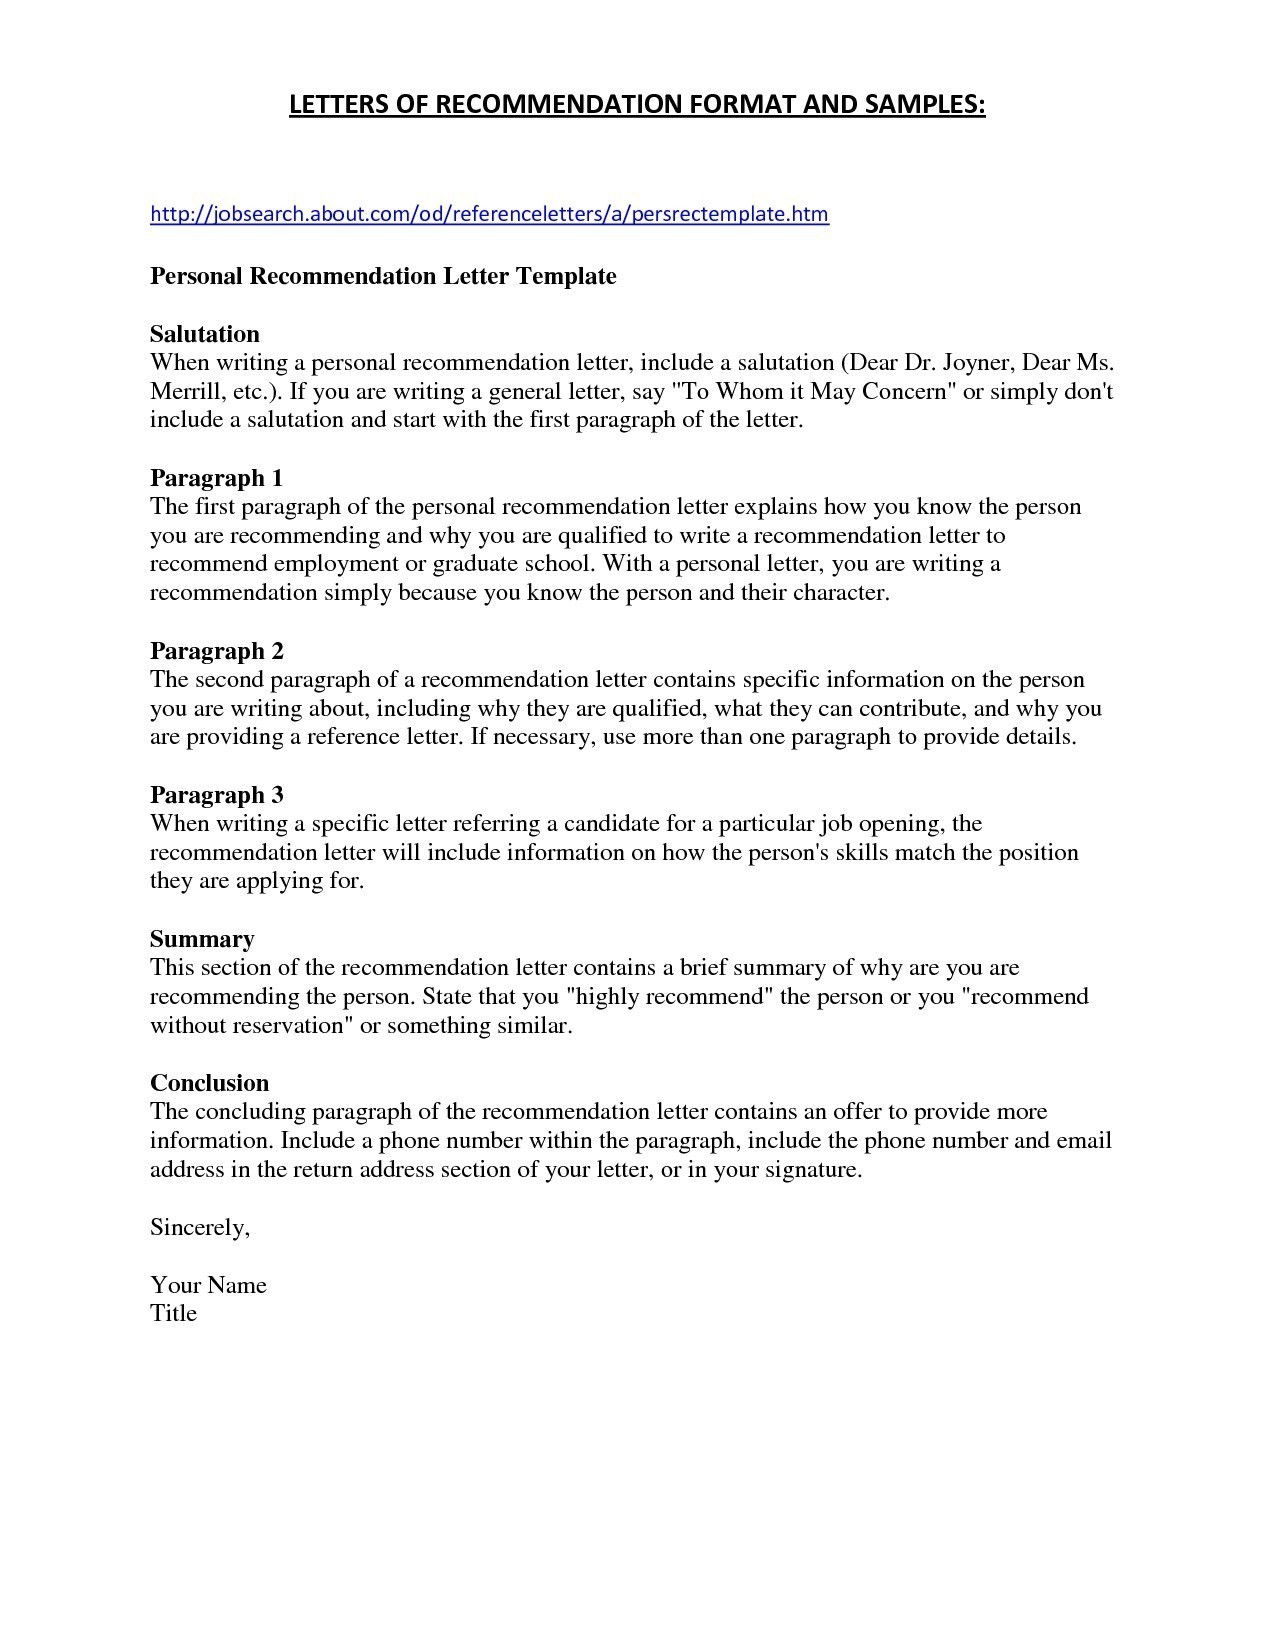 Letter Of Intent for Job Template - Letter Intent Job Example Best Letter Intent Sample Job New Non